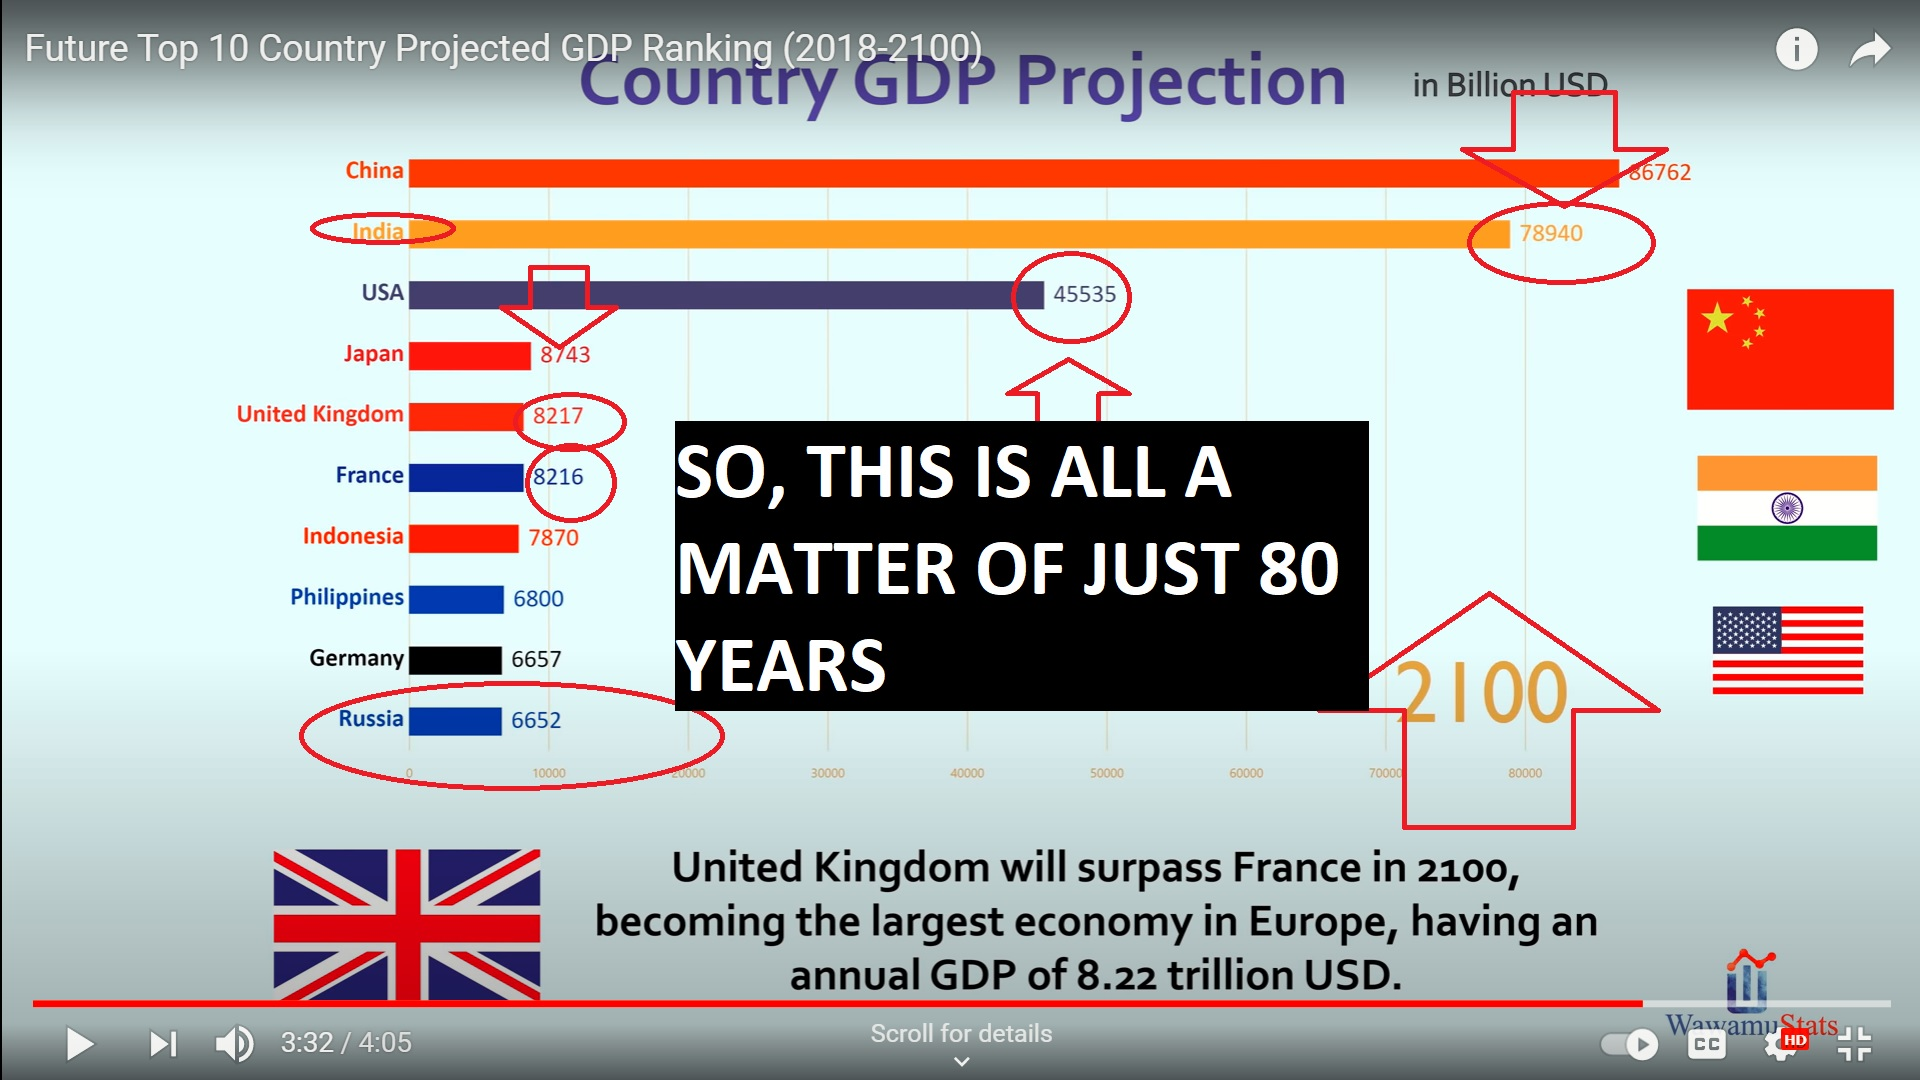 IN 2100 - INDIA WILL BE THE SECOND NUMBERED NATION IN WORLD GDP